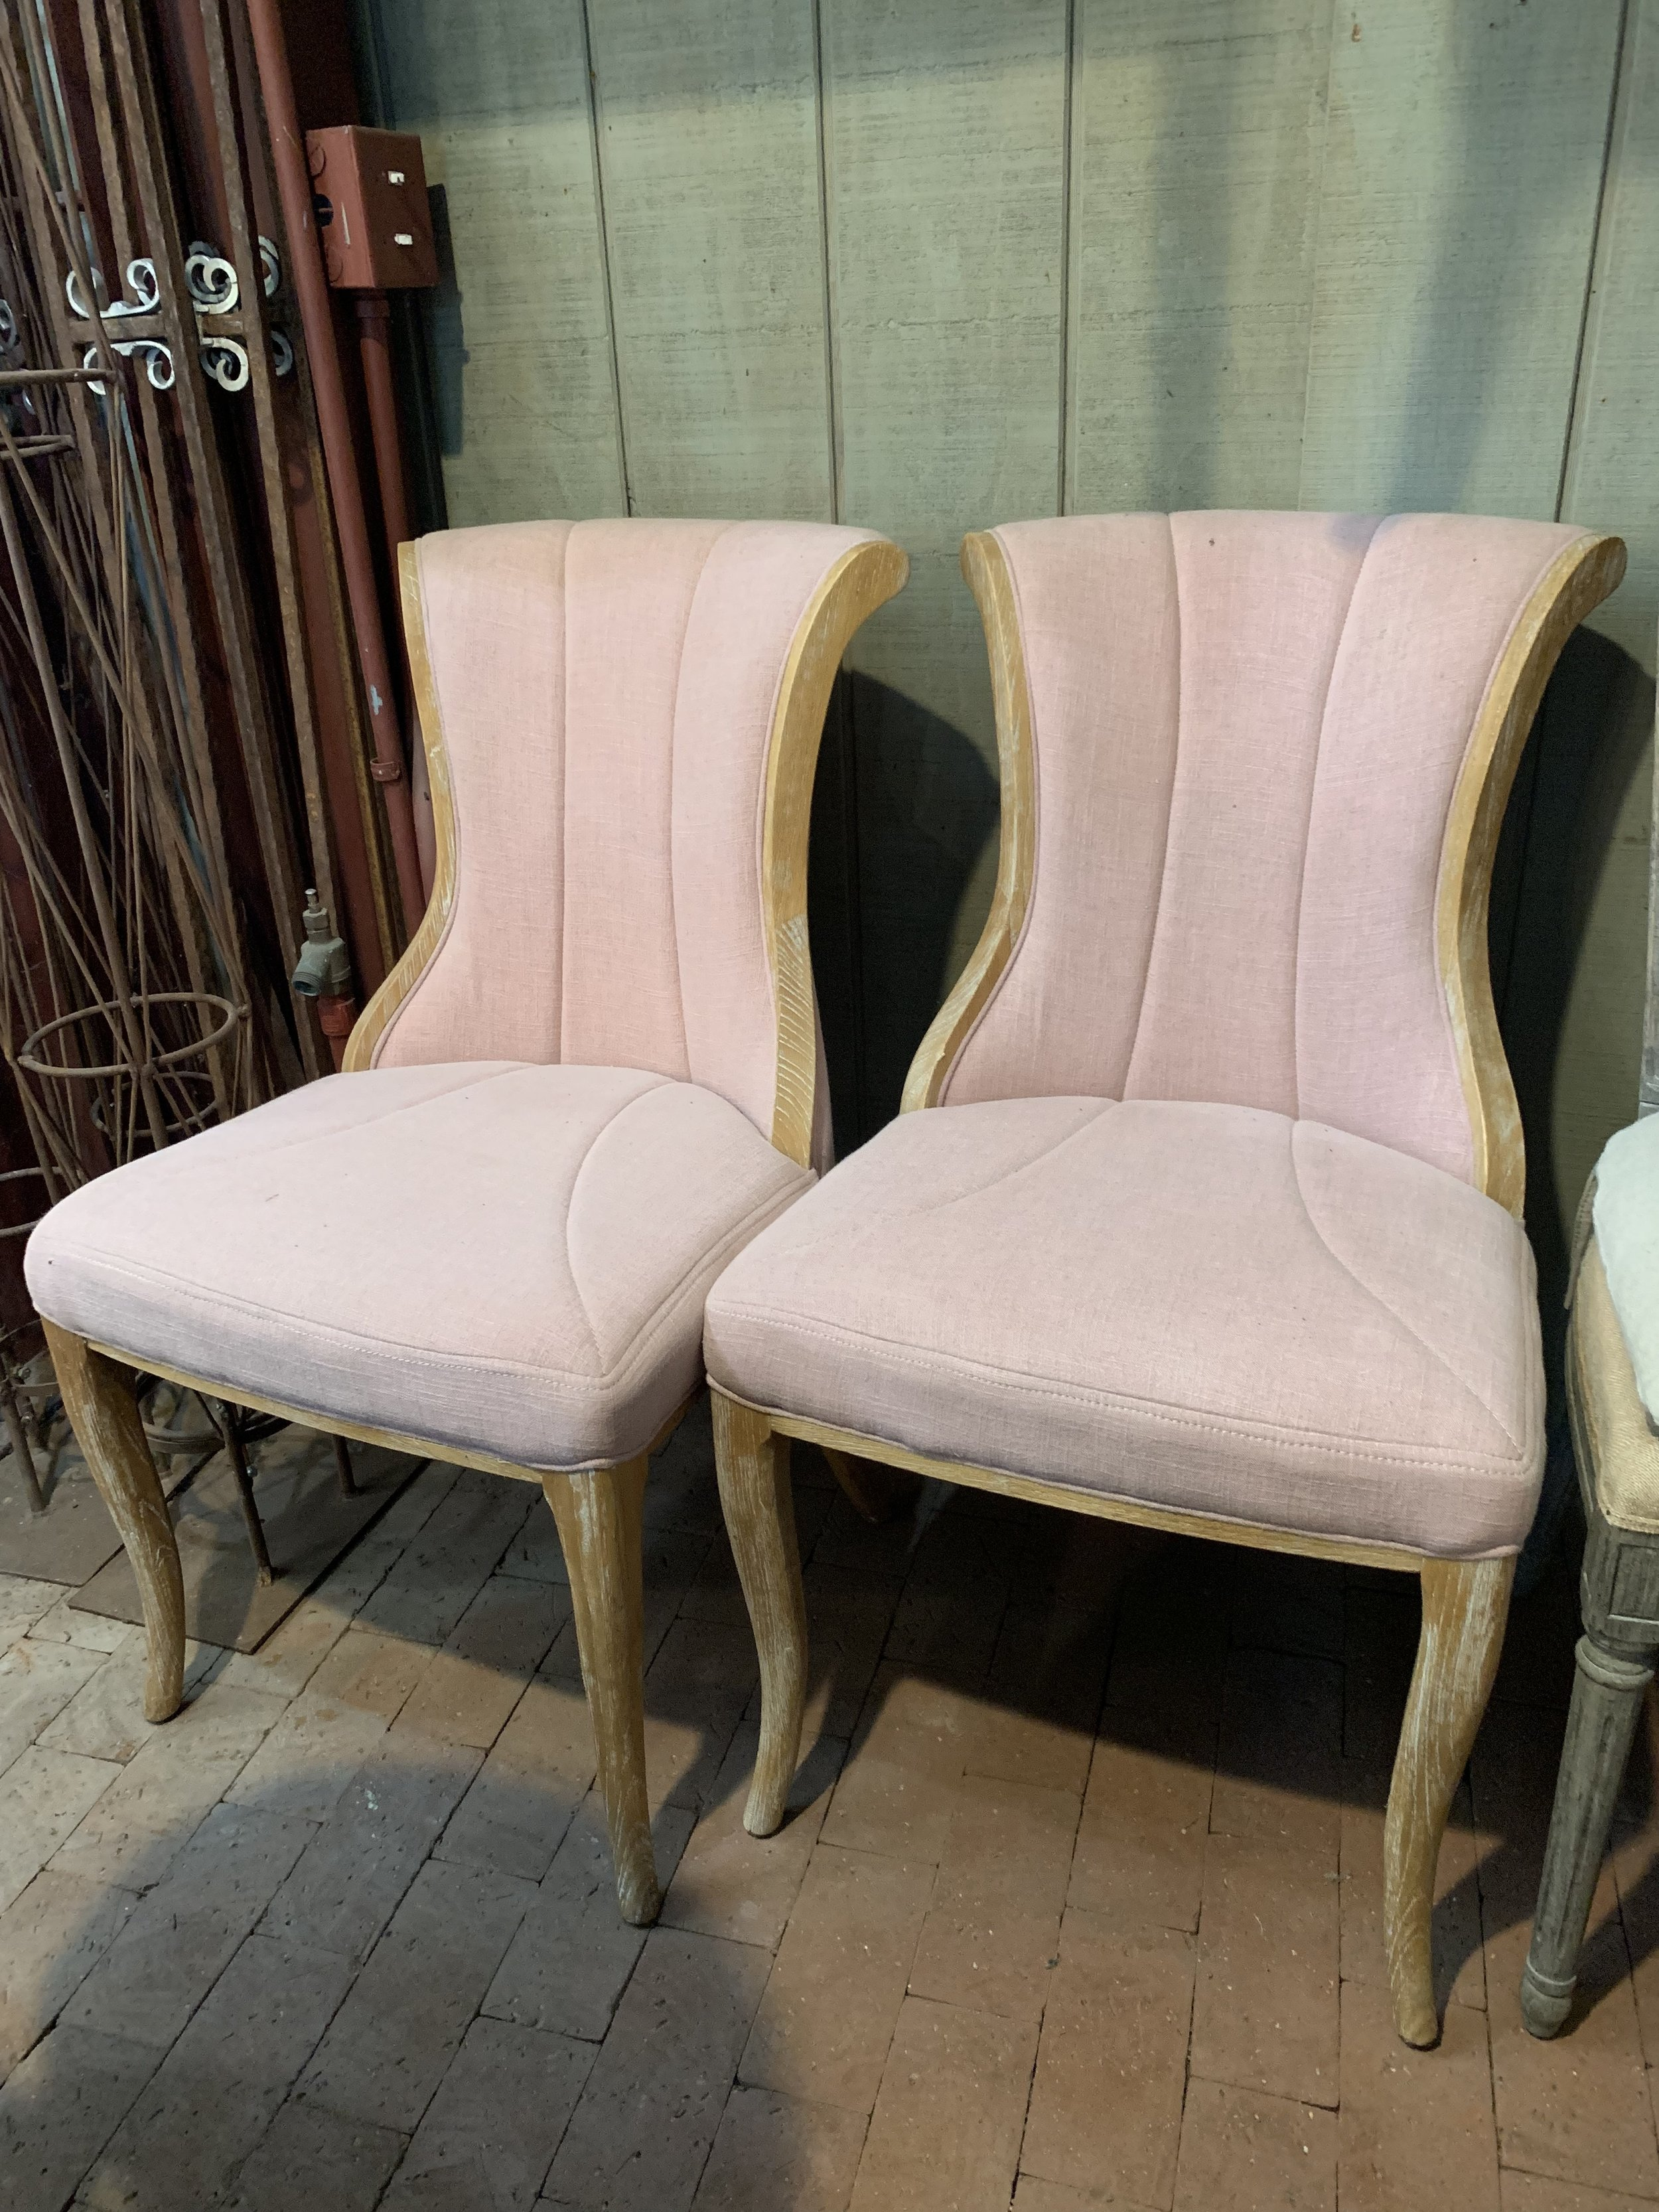 PINK BRIDE AND GROOM CHAIRS - $70